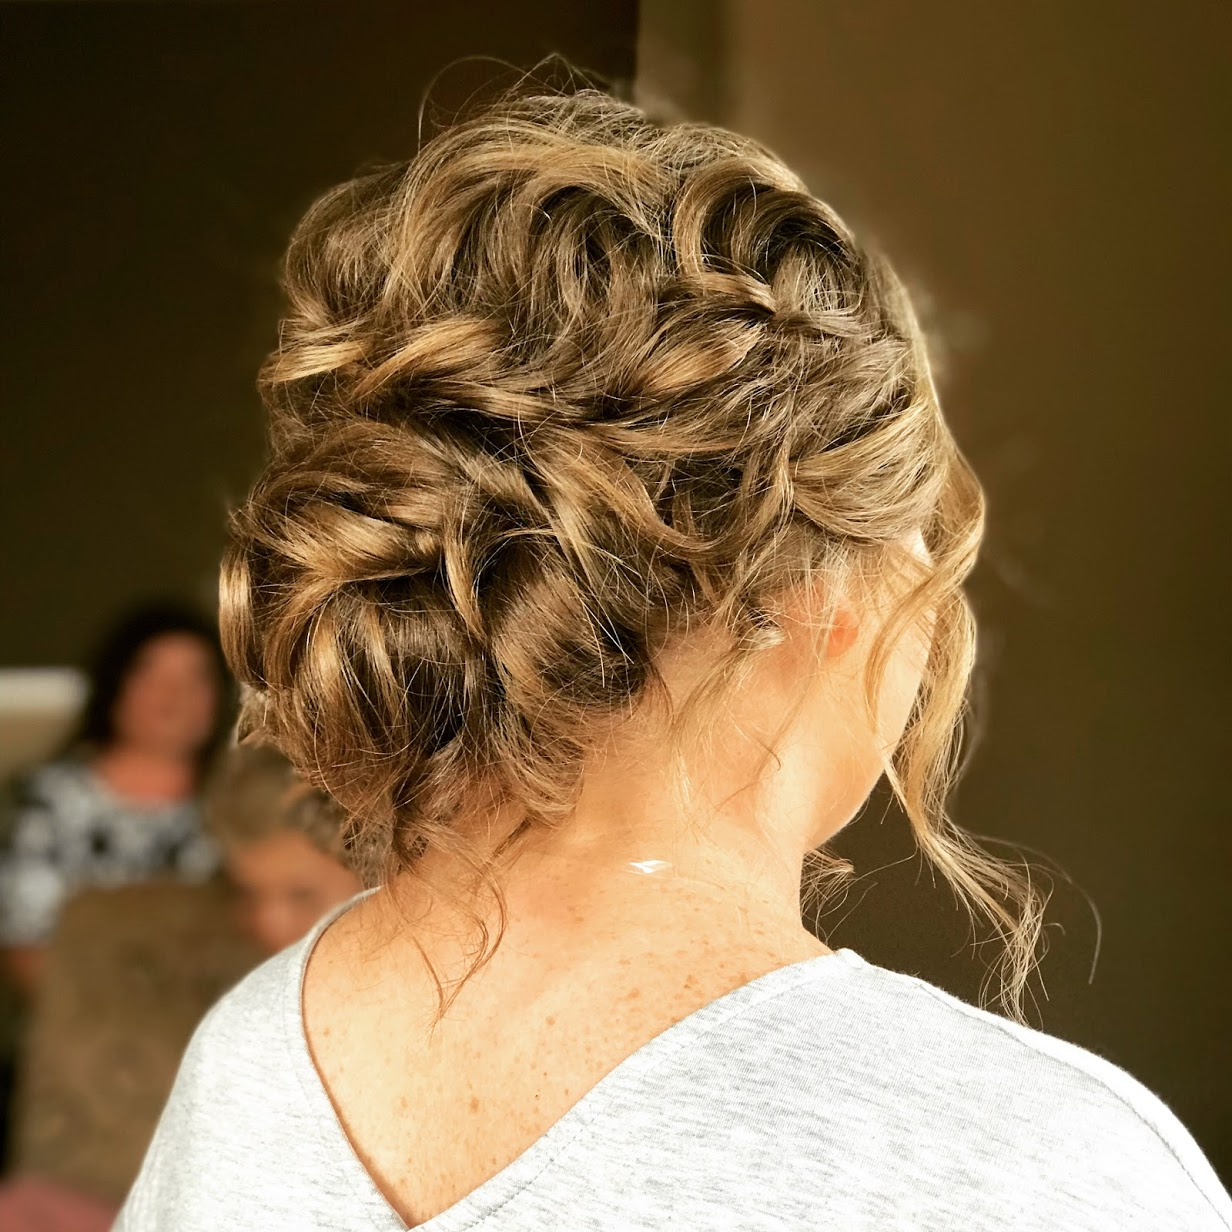 Updo with Texture